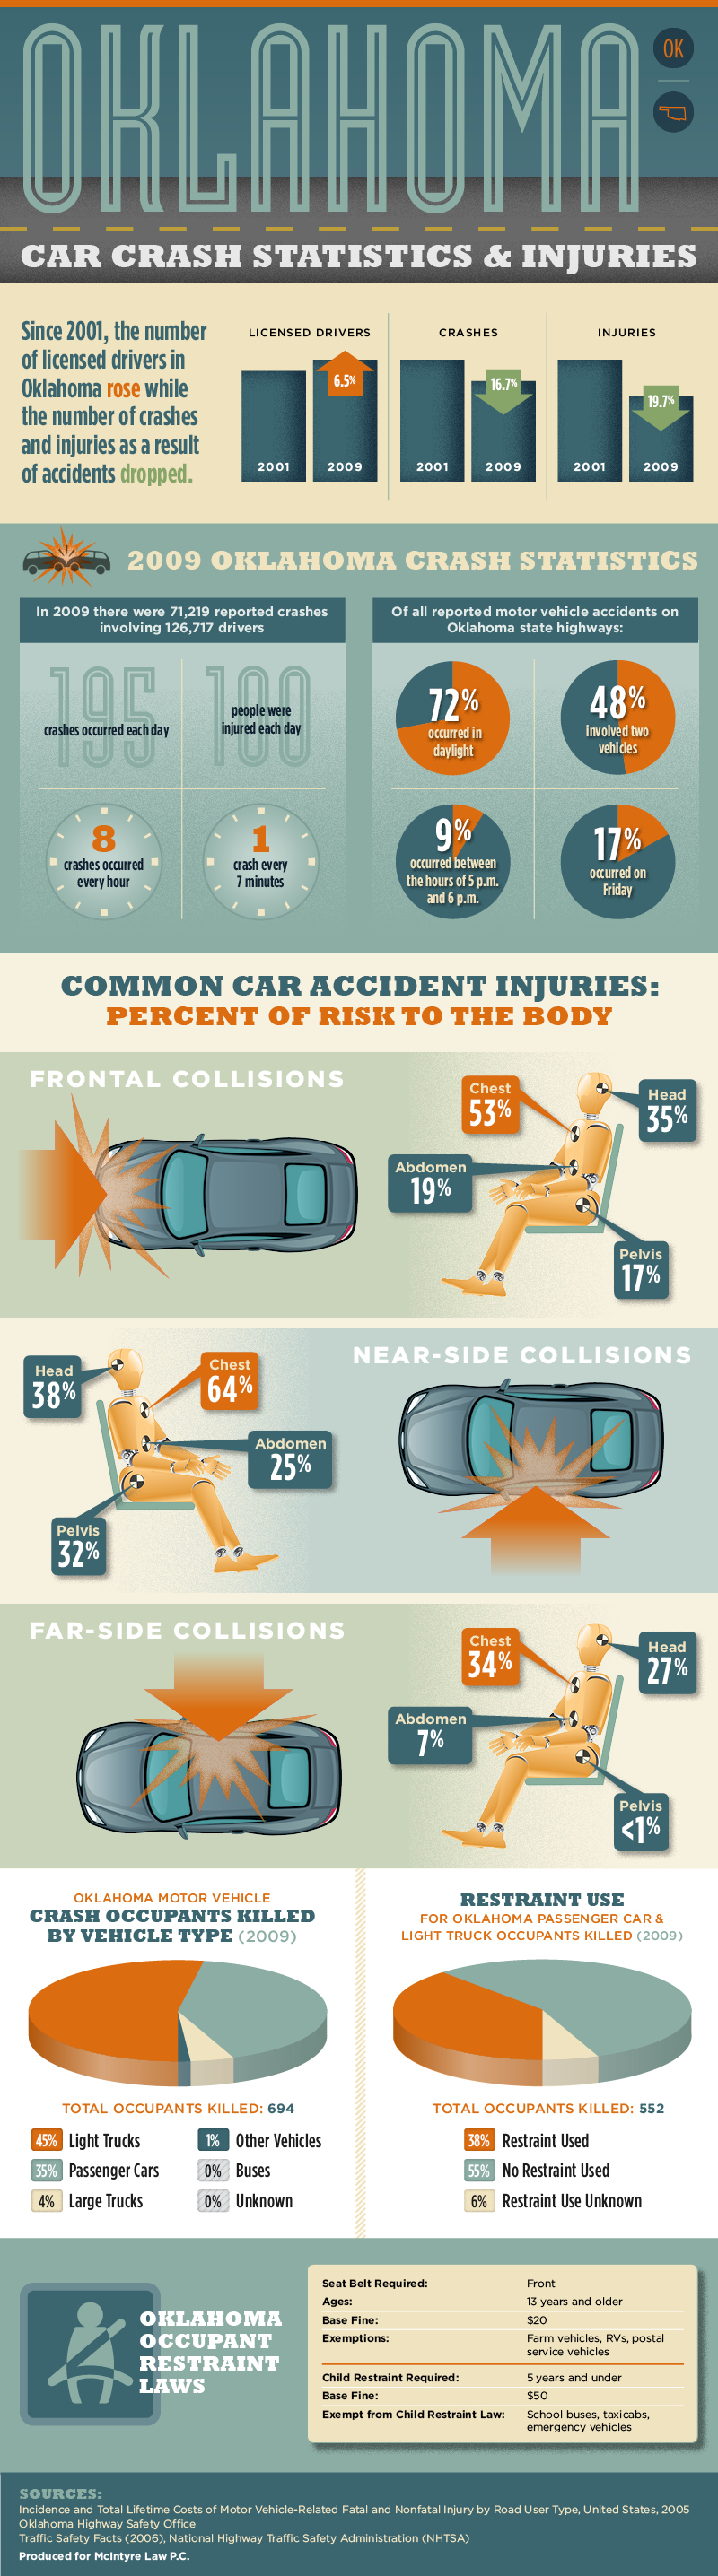 Oklahoma Car Crash Injuries & Statistics